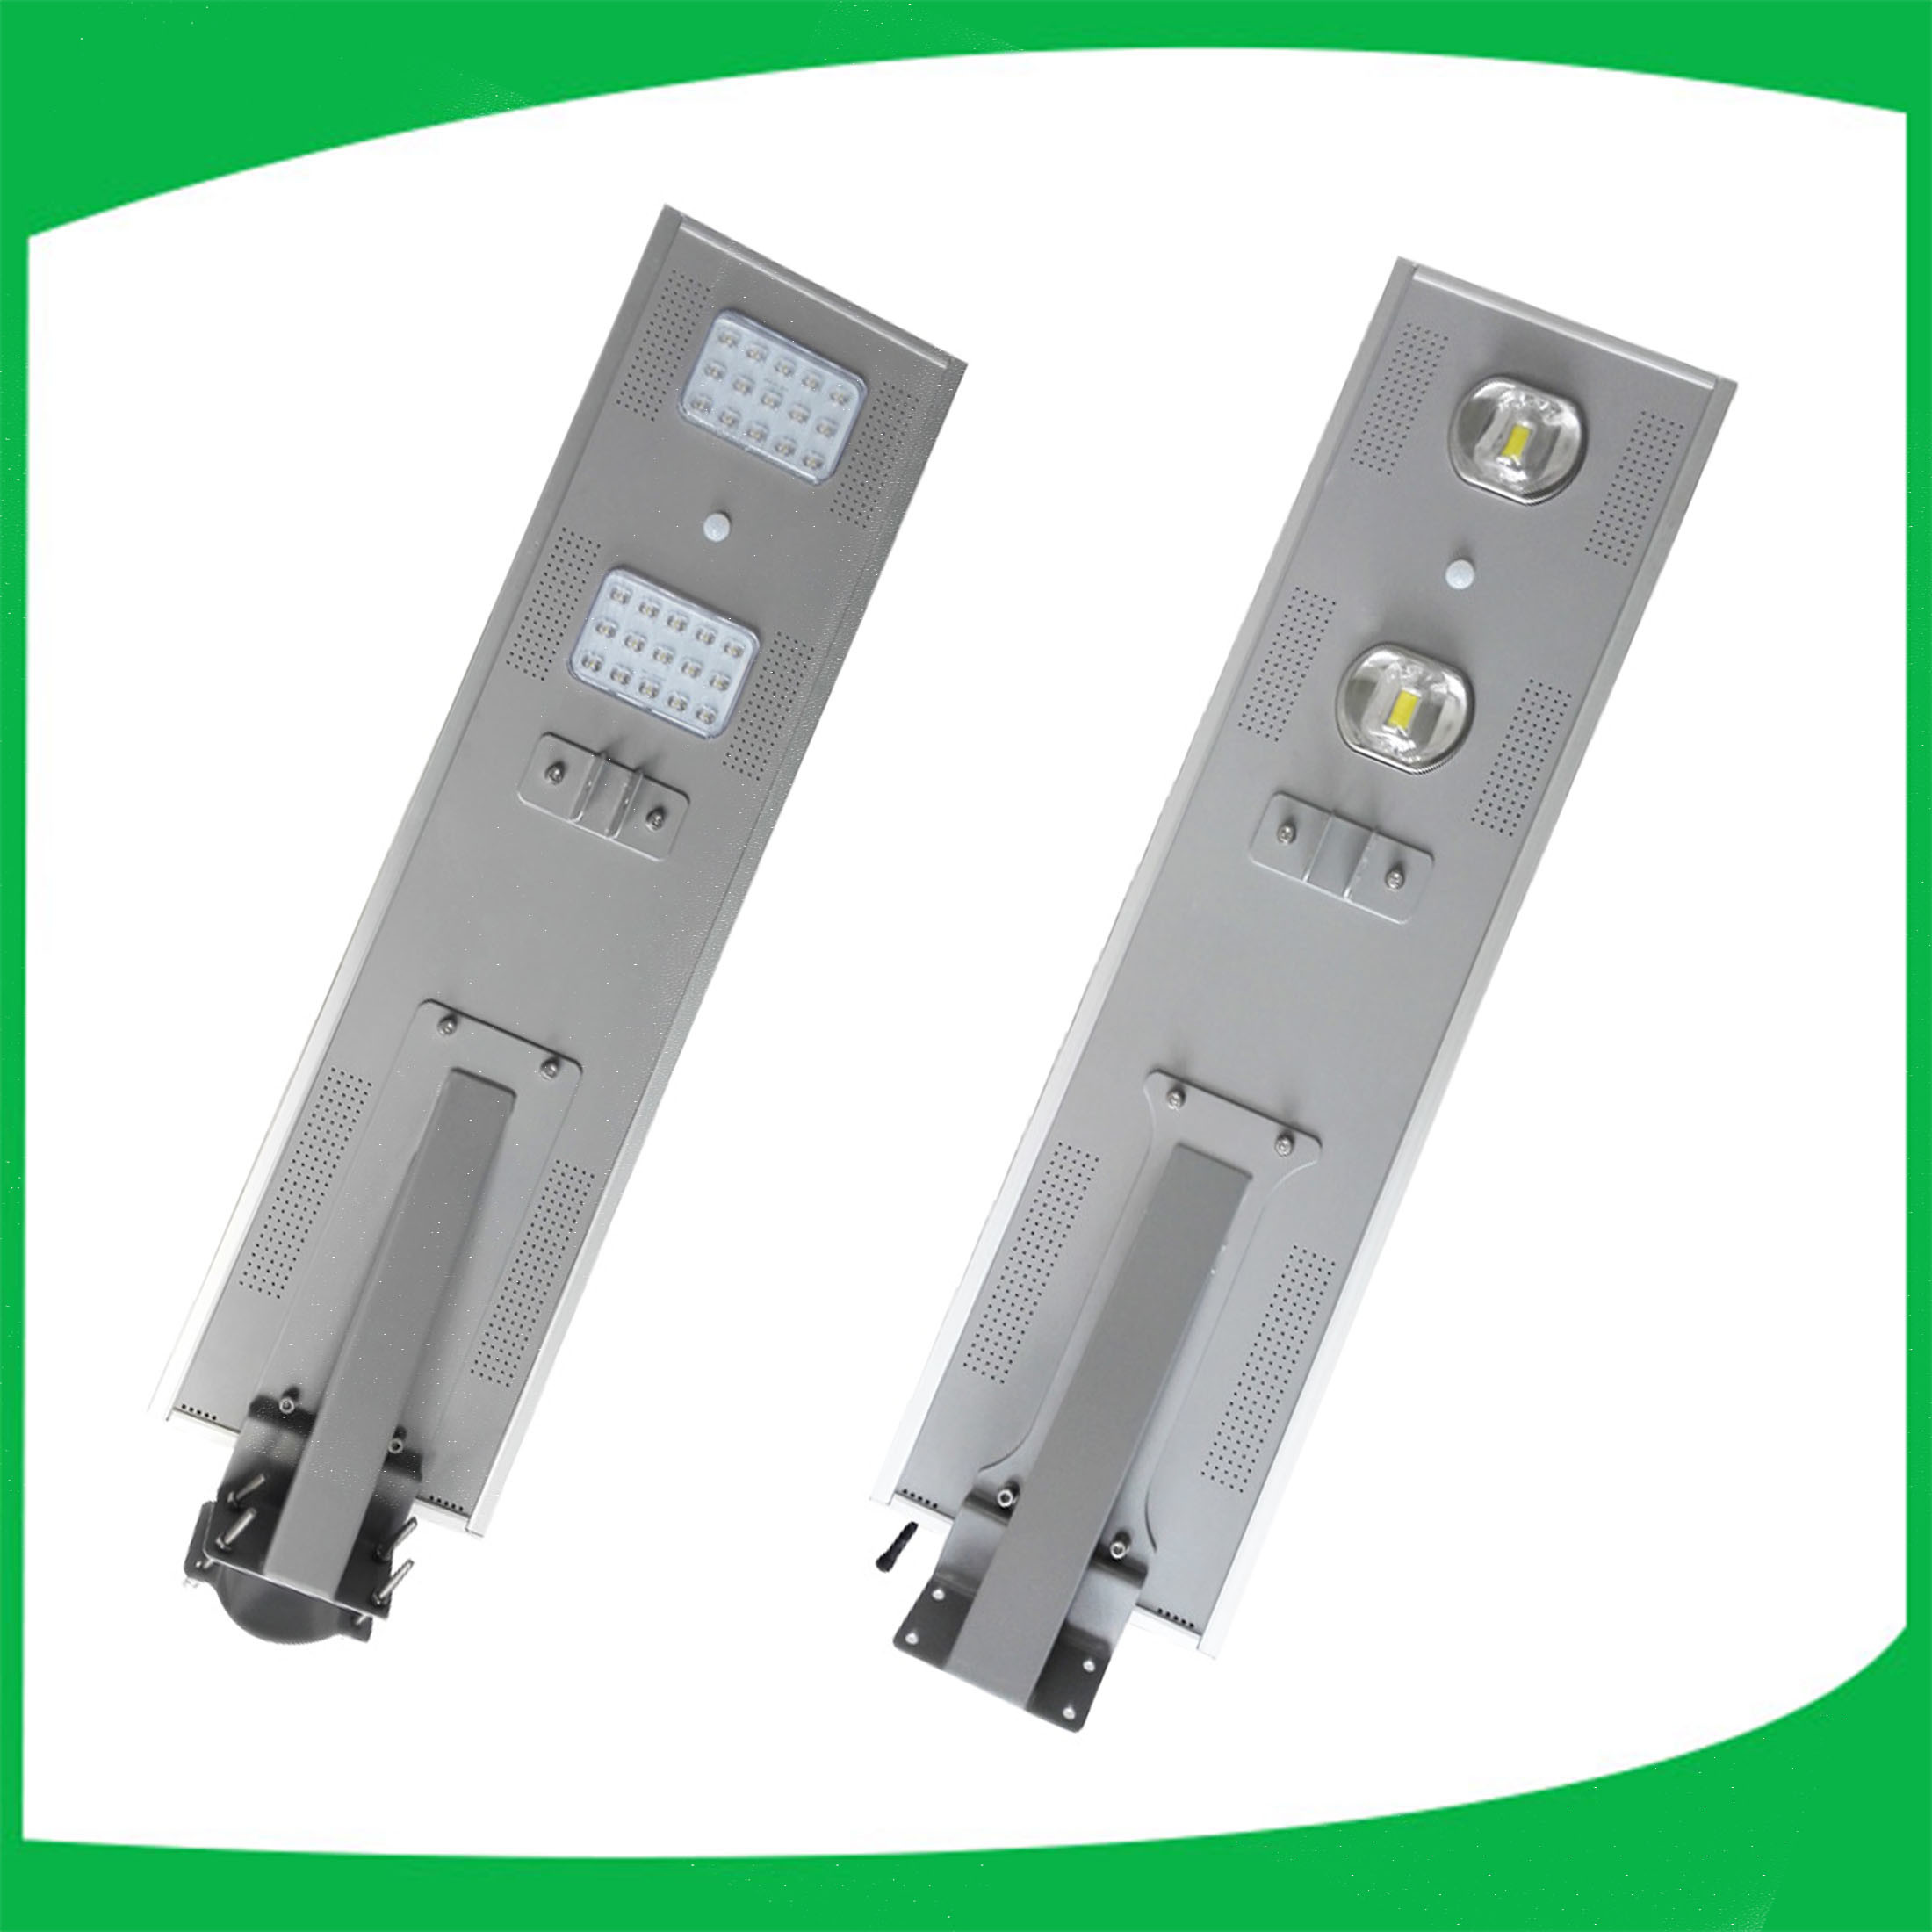 China 30w dimmable all in one solar street light 6w 80w led 30w dimmable all in one solar street light 6w 80w led lighting manufacturers arubaitofo Images